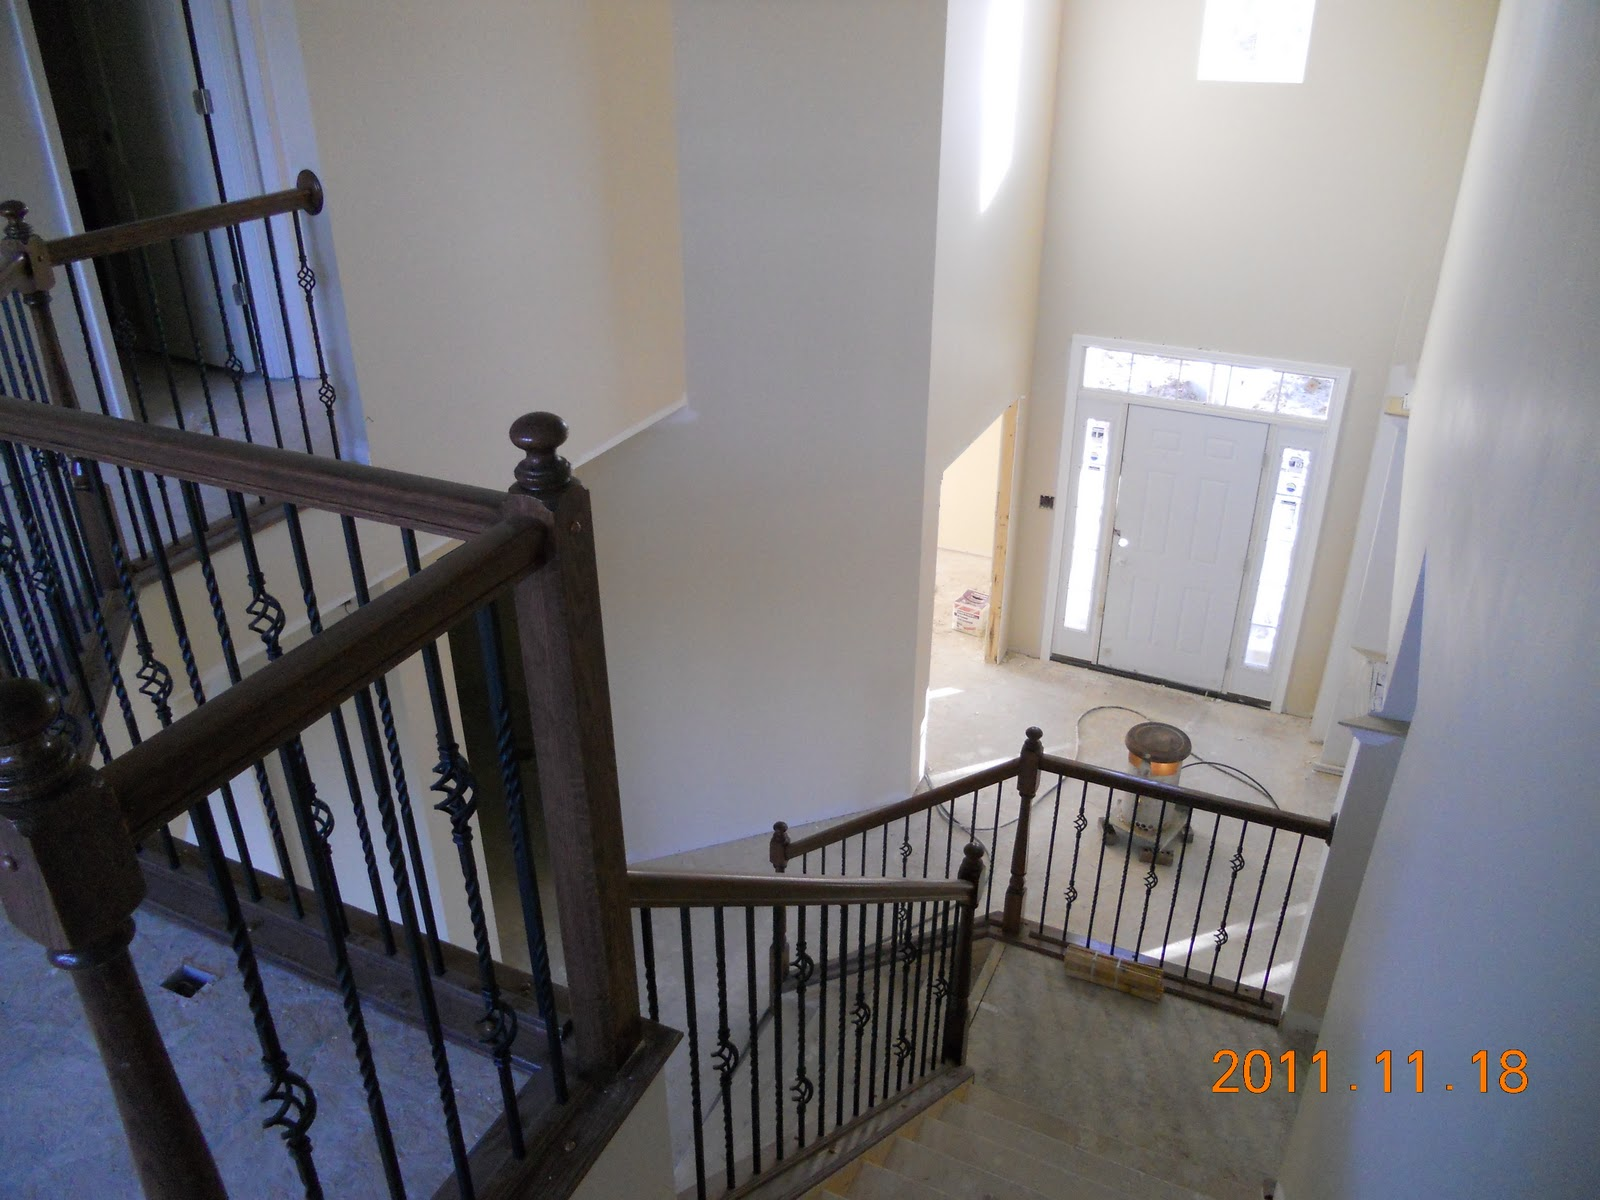 Basement Stair Trim: Brick Work Complete, Stair Railing Installed And Trim Work